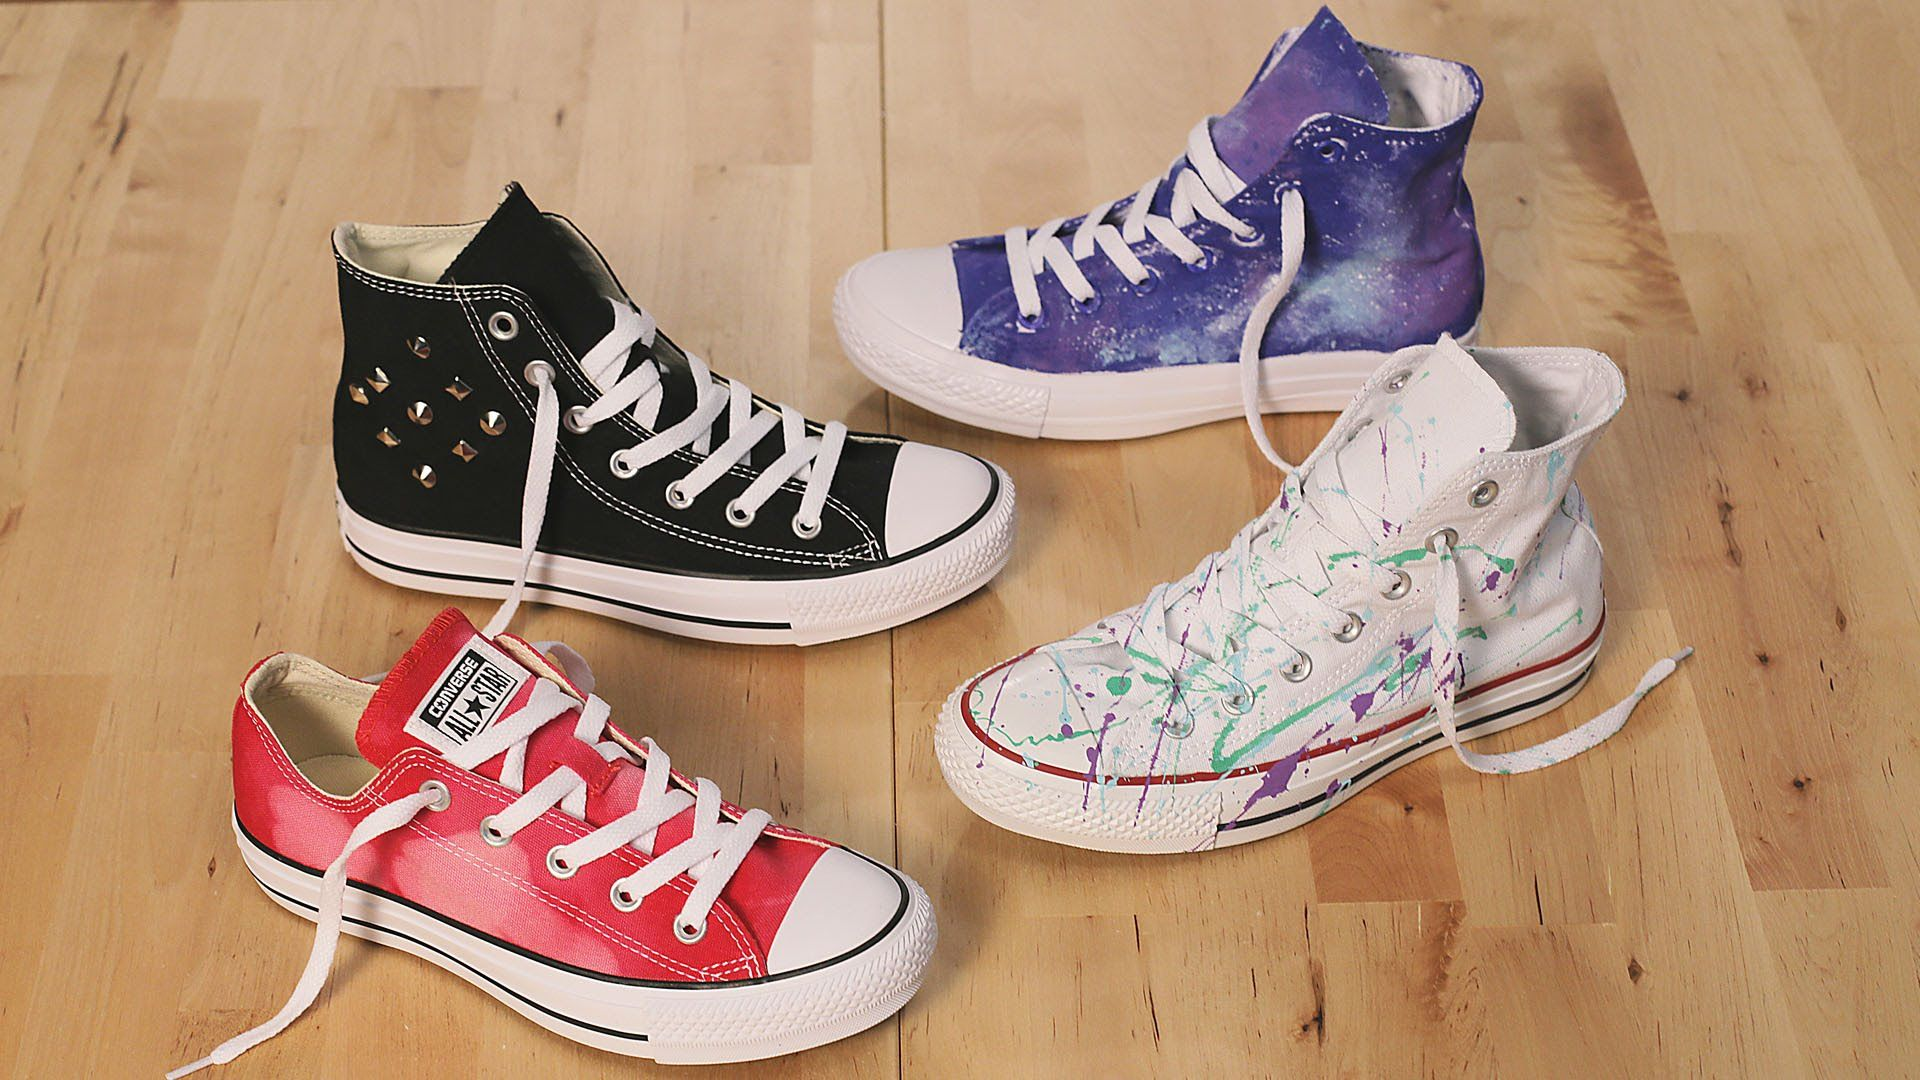 5b3b72ac639 DIY Ways to Customize Converse Part 2 | Famous Footwear